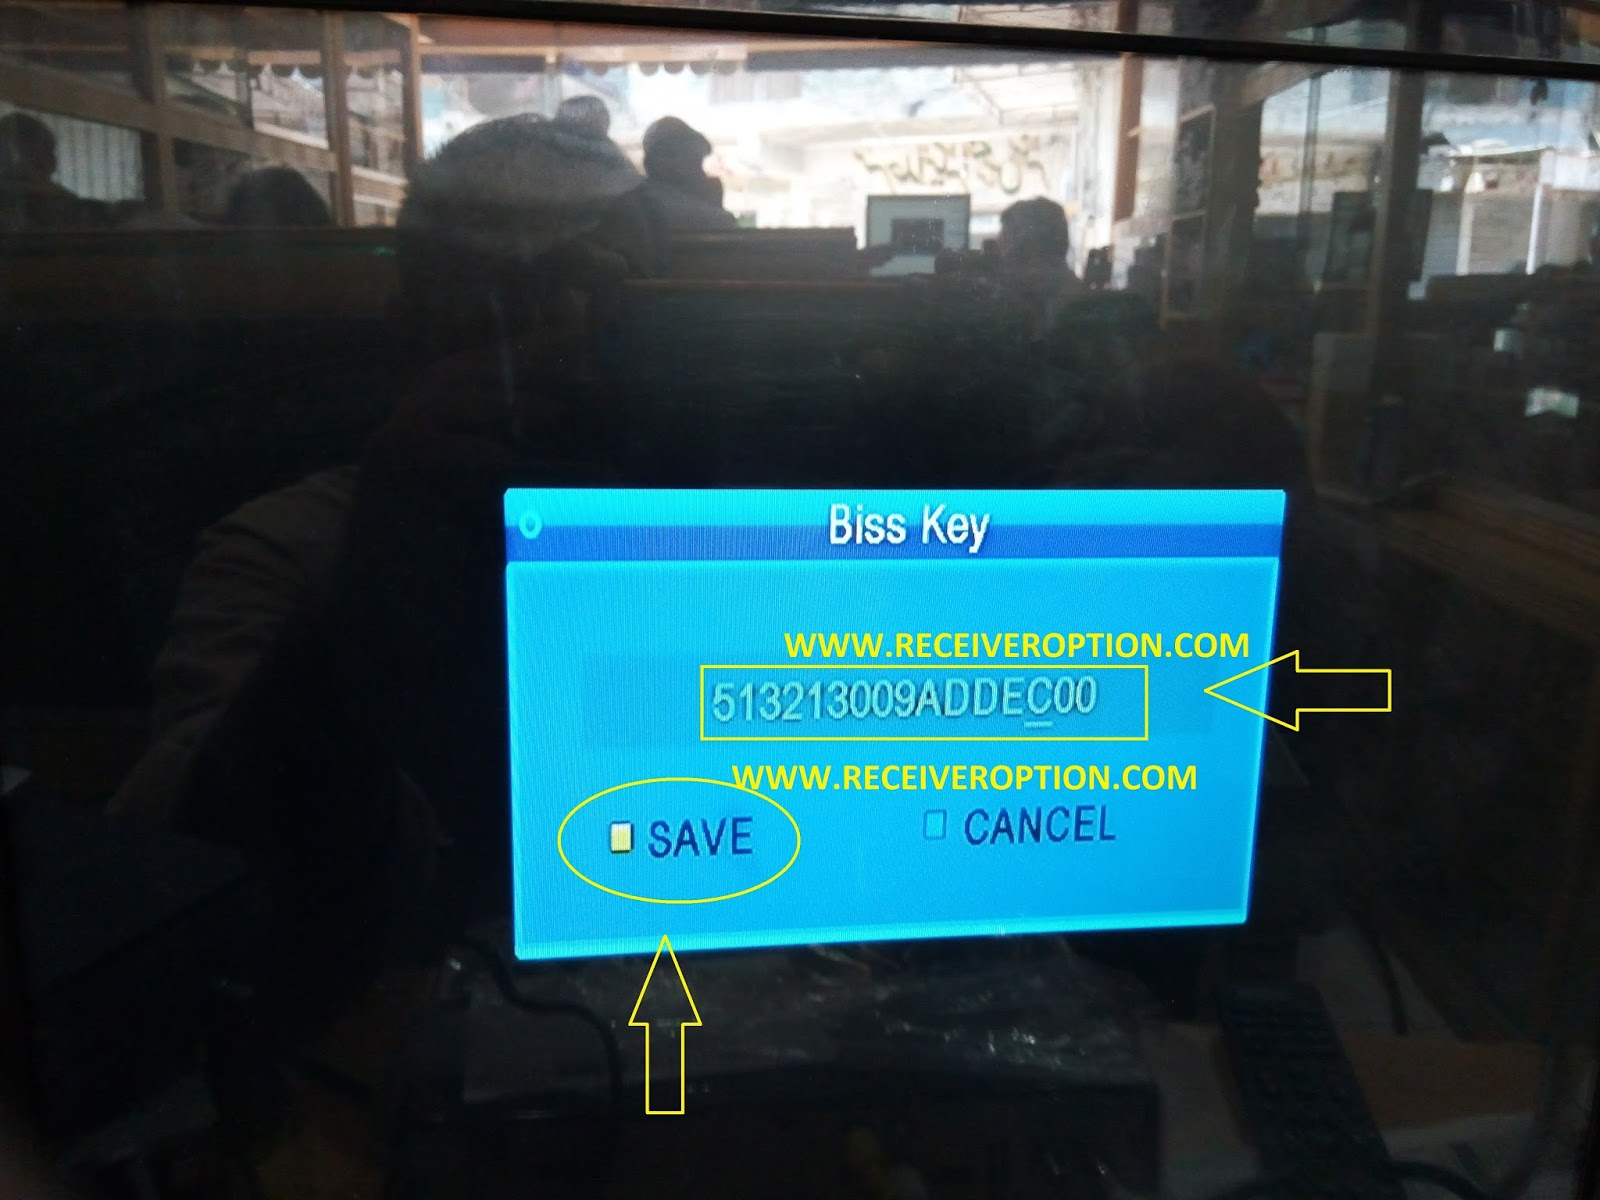 TIGER-PLUS HD RECEIVER BISS KEY OPTION - HOW TO ENTER BISS KEY POWER